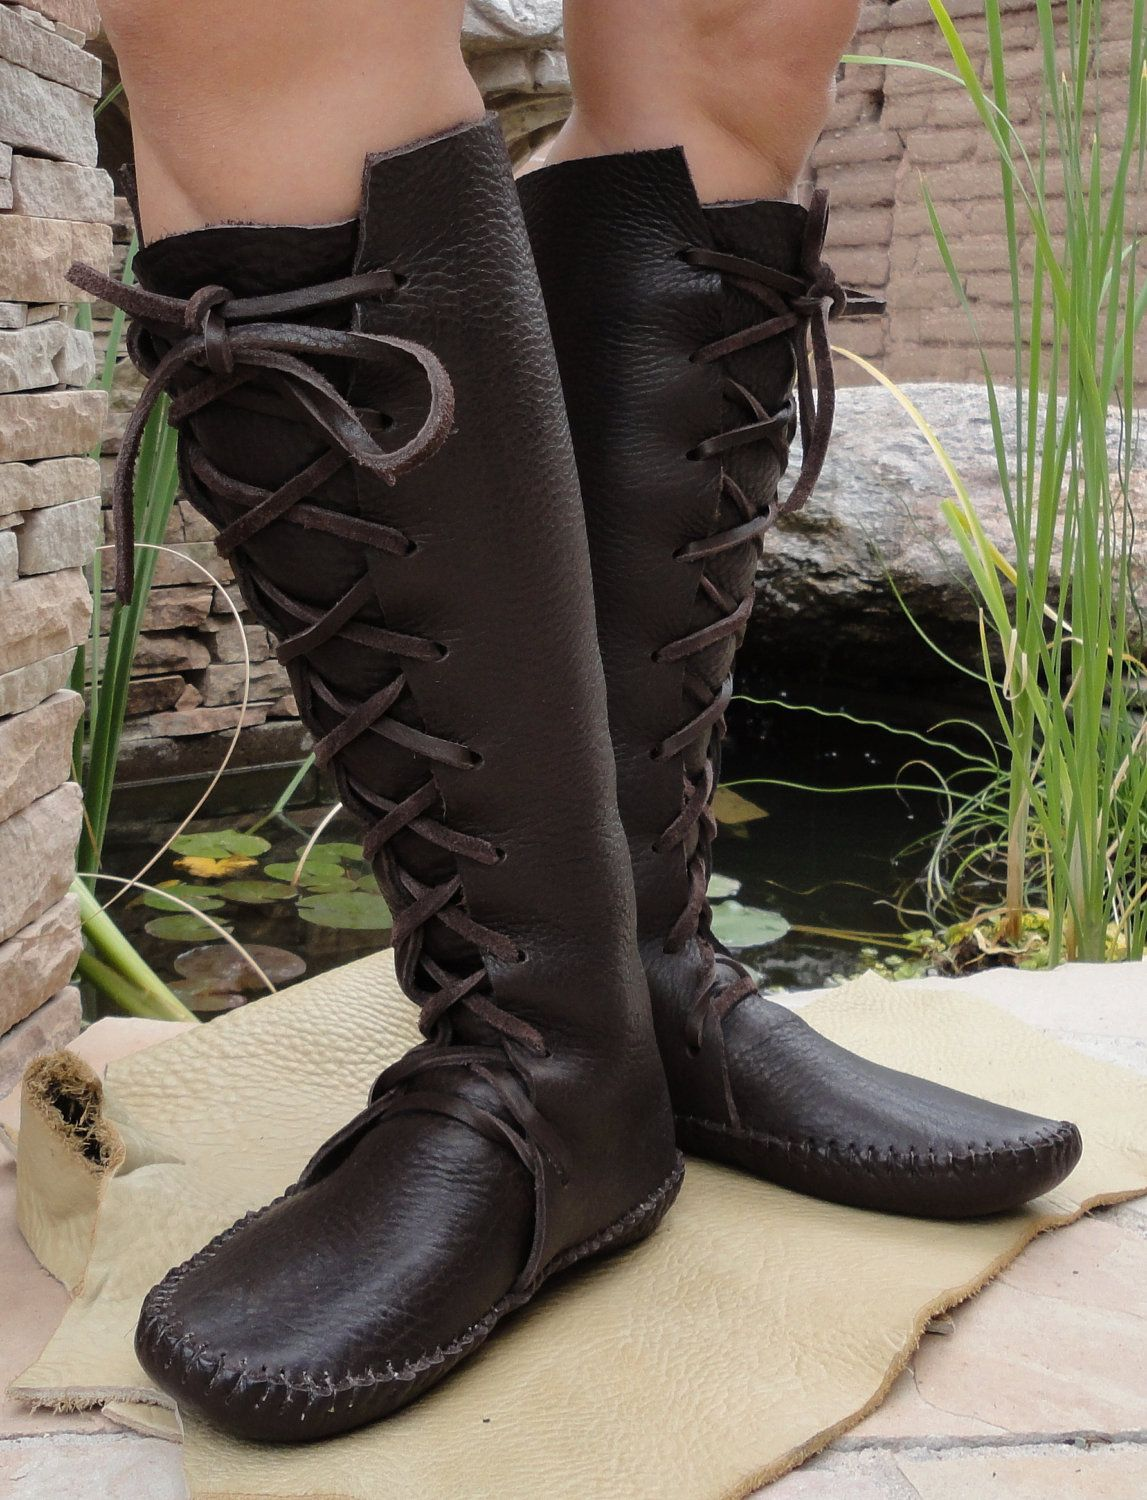 73149e7922c5 Elf Boots Handmade Moccasins Dark brown Leather w Leather soles Order Your  Size Mens and Womens sizes many colors custom orders.  225.00